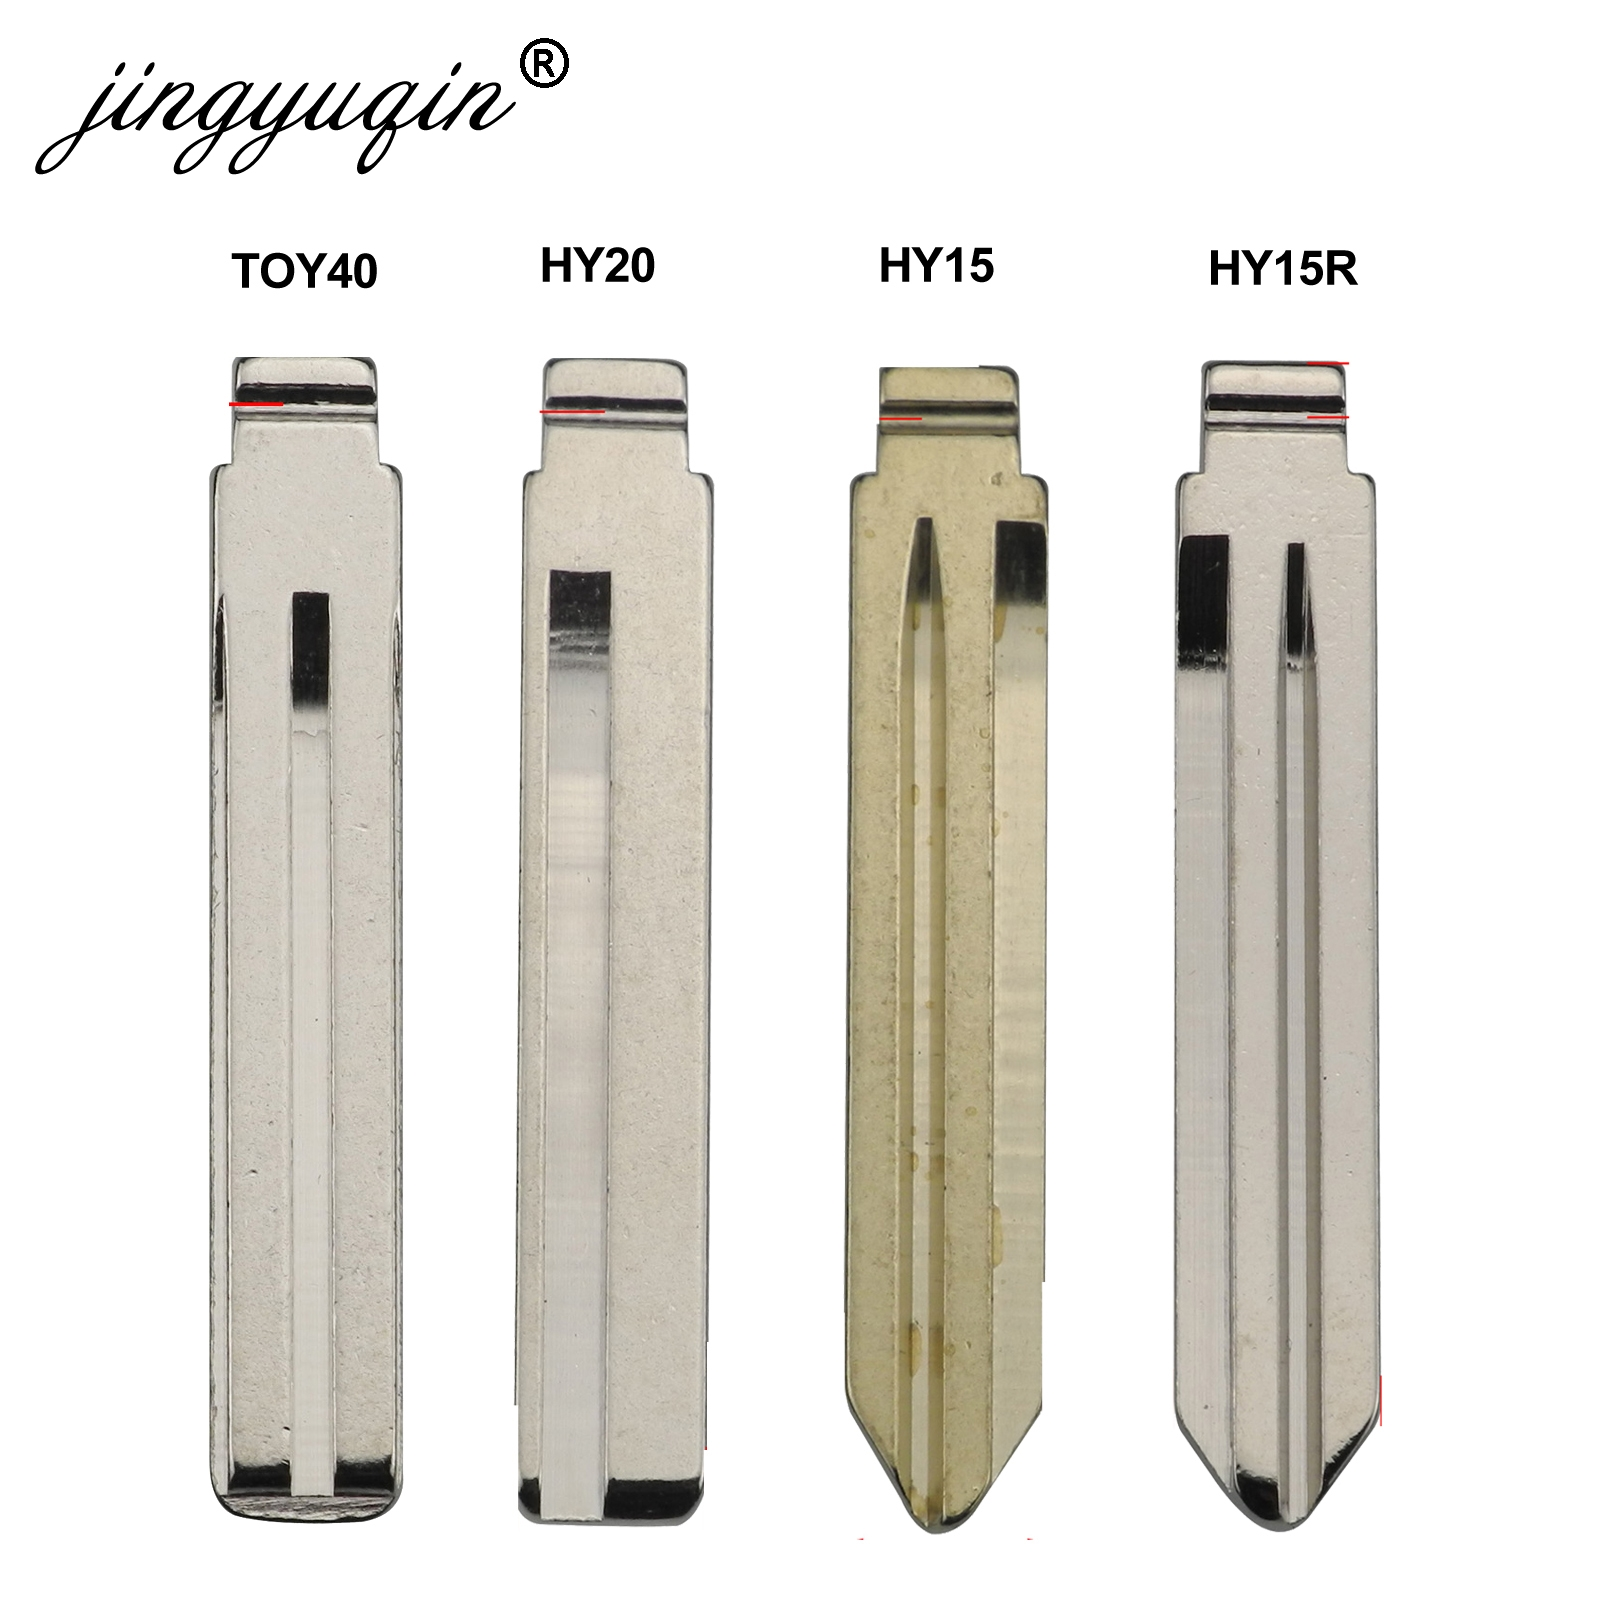 Image 4 - jingyuqin For Hyundai I20 I30 IX35 Avante 433Mhz ID46 Chip 3 Buttons Flip Folding Car Remote Key Fob-in Car Key from Automobiles & Motorcycles